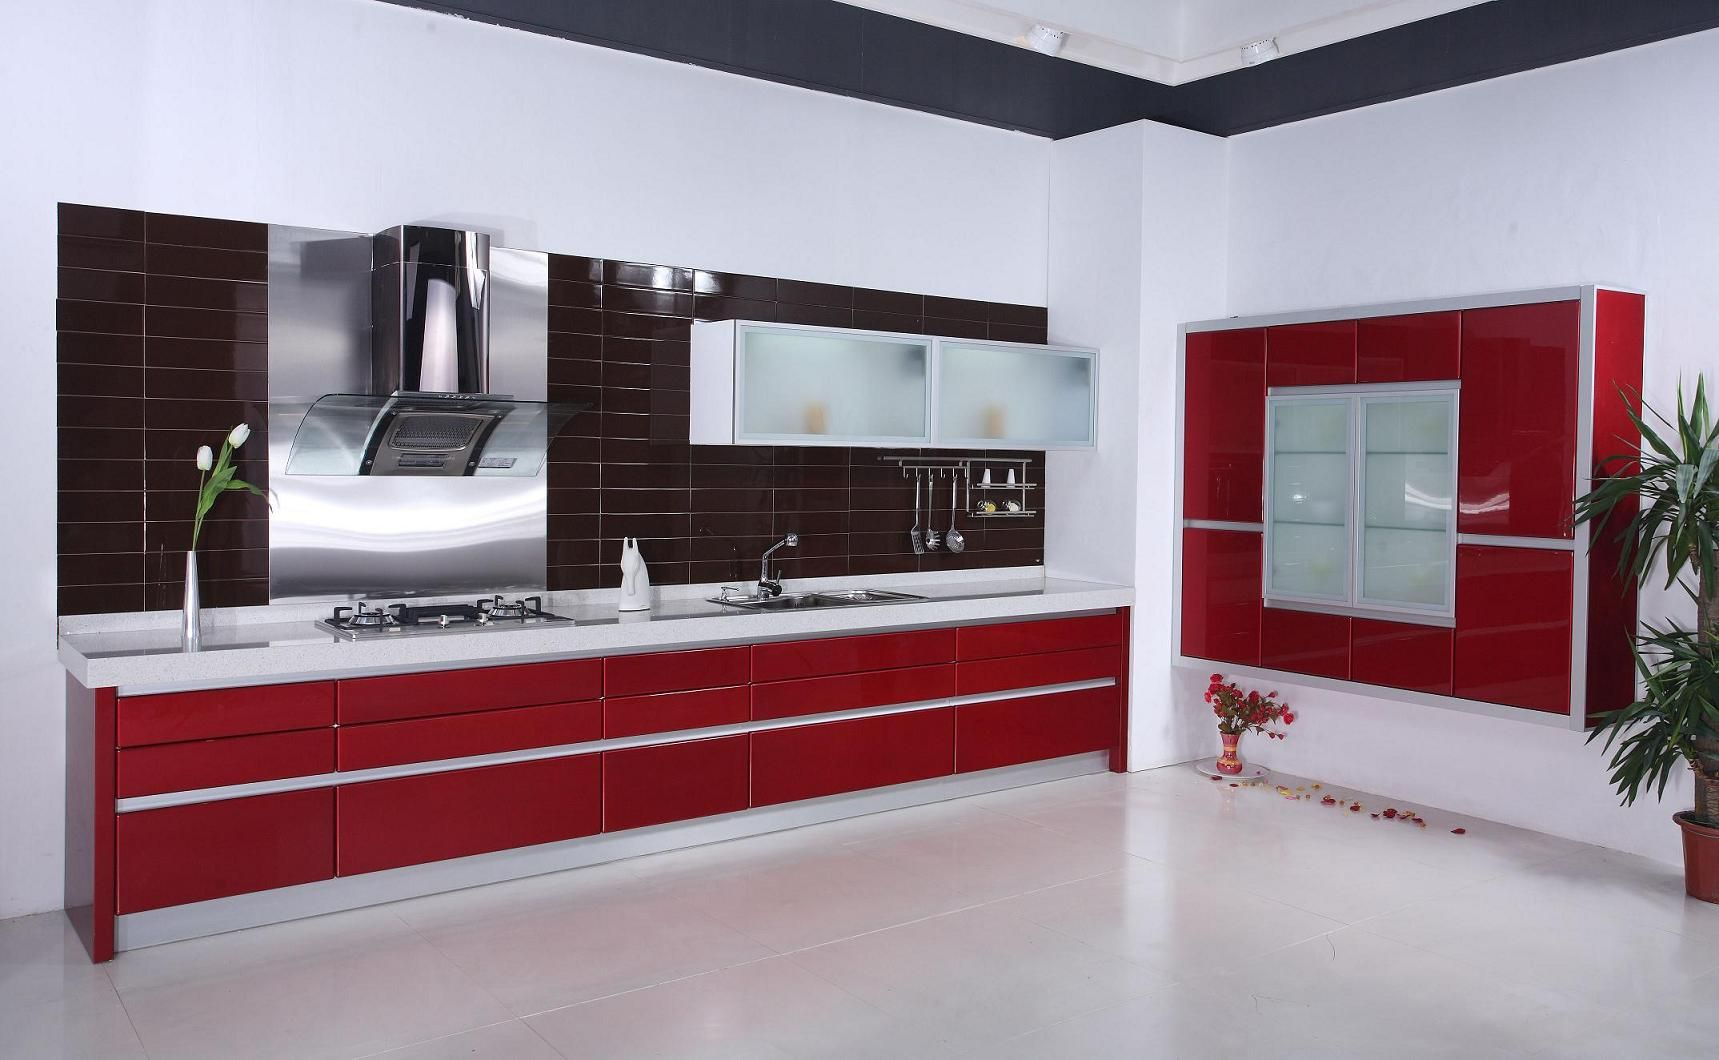 kitchencontemporary barstool window red and white kitchen cabinets handle stainless steel modern led downlight white vinyl laminate flooring books